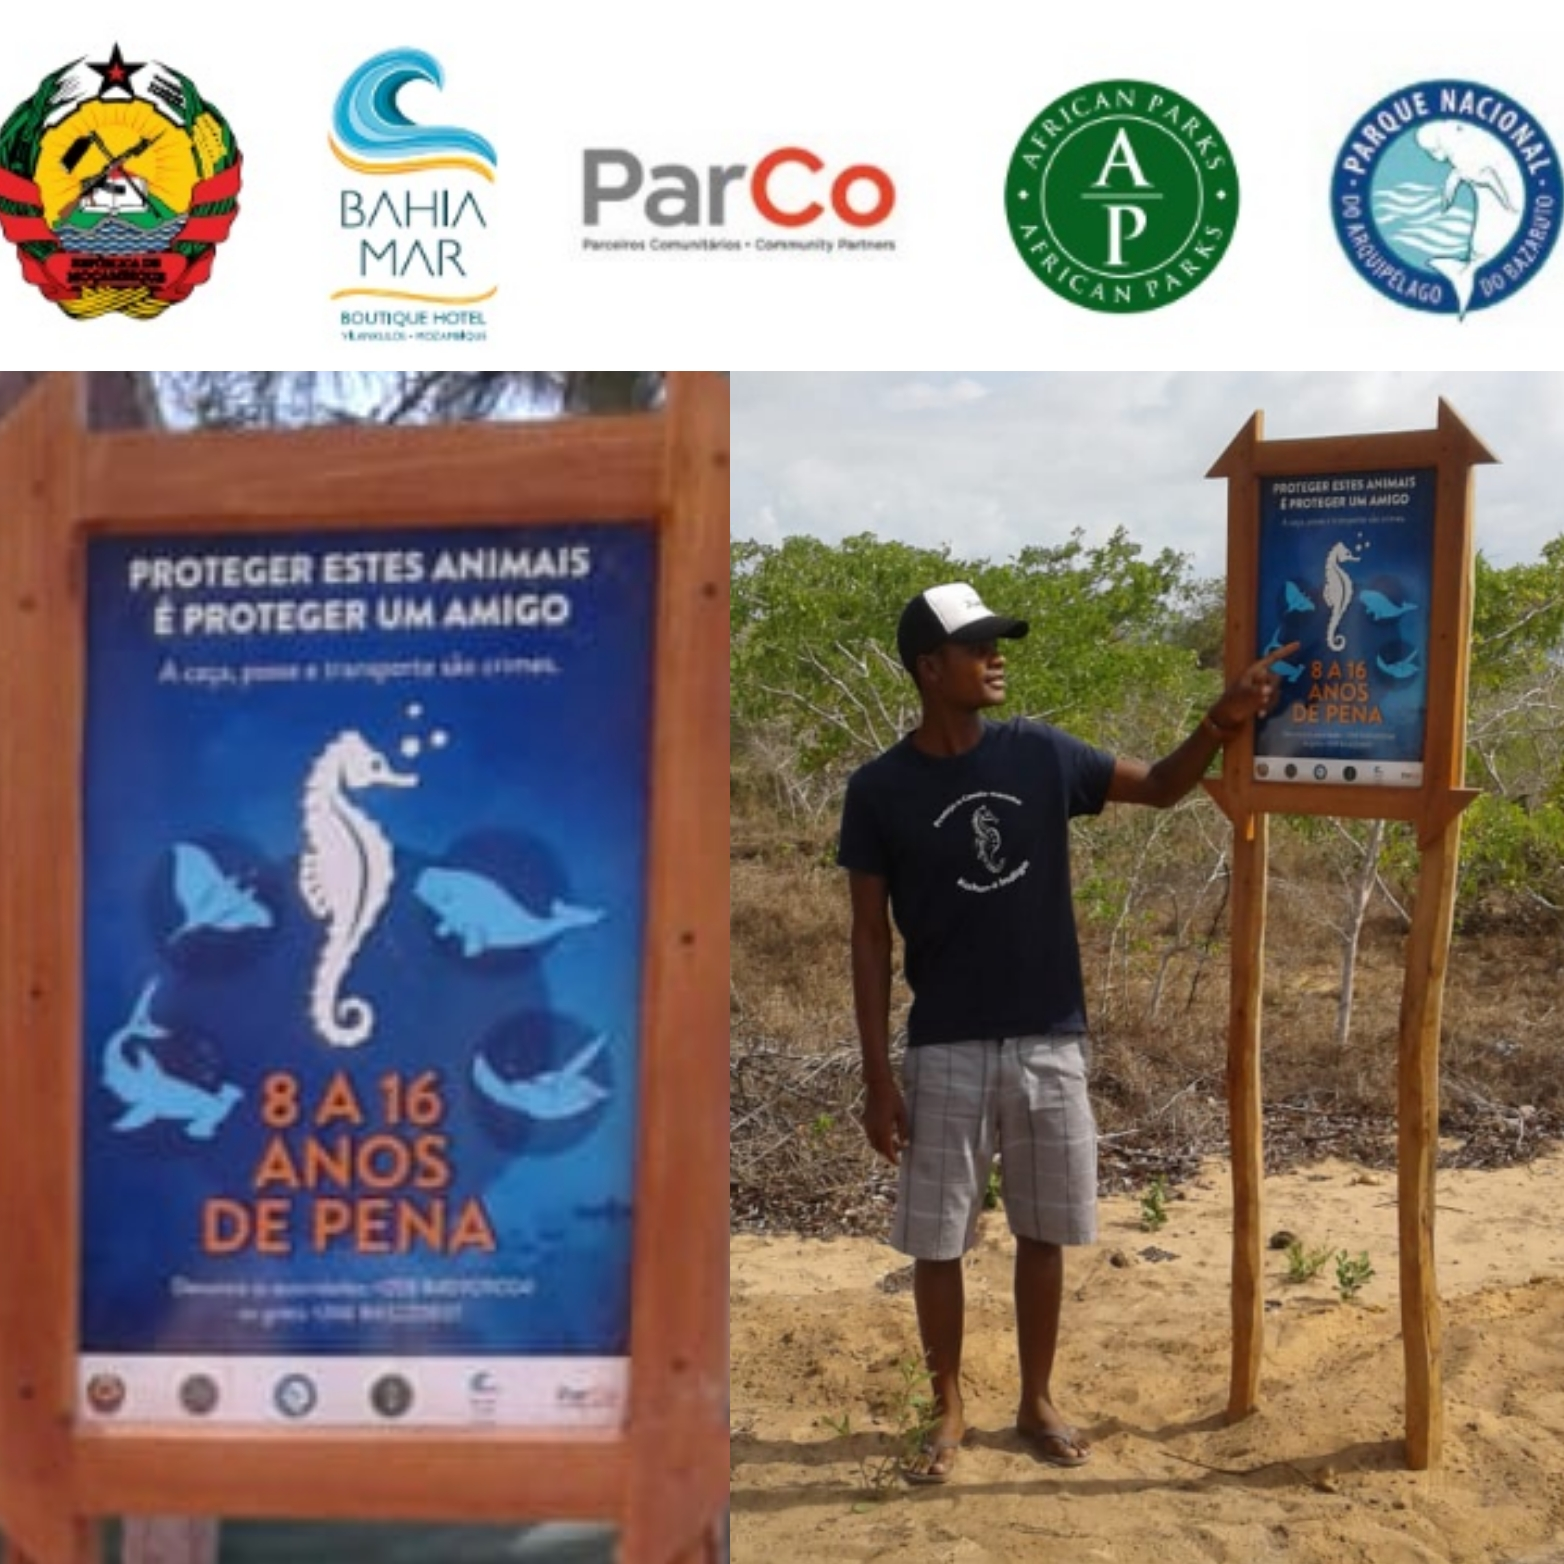 "Signage - These signs were designed in collaboration between ParCo, Bahia Mar, African Park and the local Mozambican Government Authorities. They have been installed at seven locations along the coast of Vilankulo including in the fishing village where seahorse poaching was rampant. It is no longer possible for a fisherman to say ""I didn't know we weren't allowed to catch that."" Another step in the right direction."